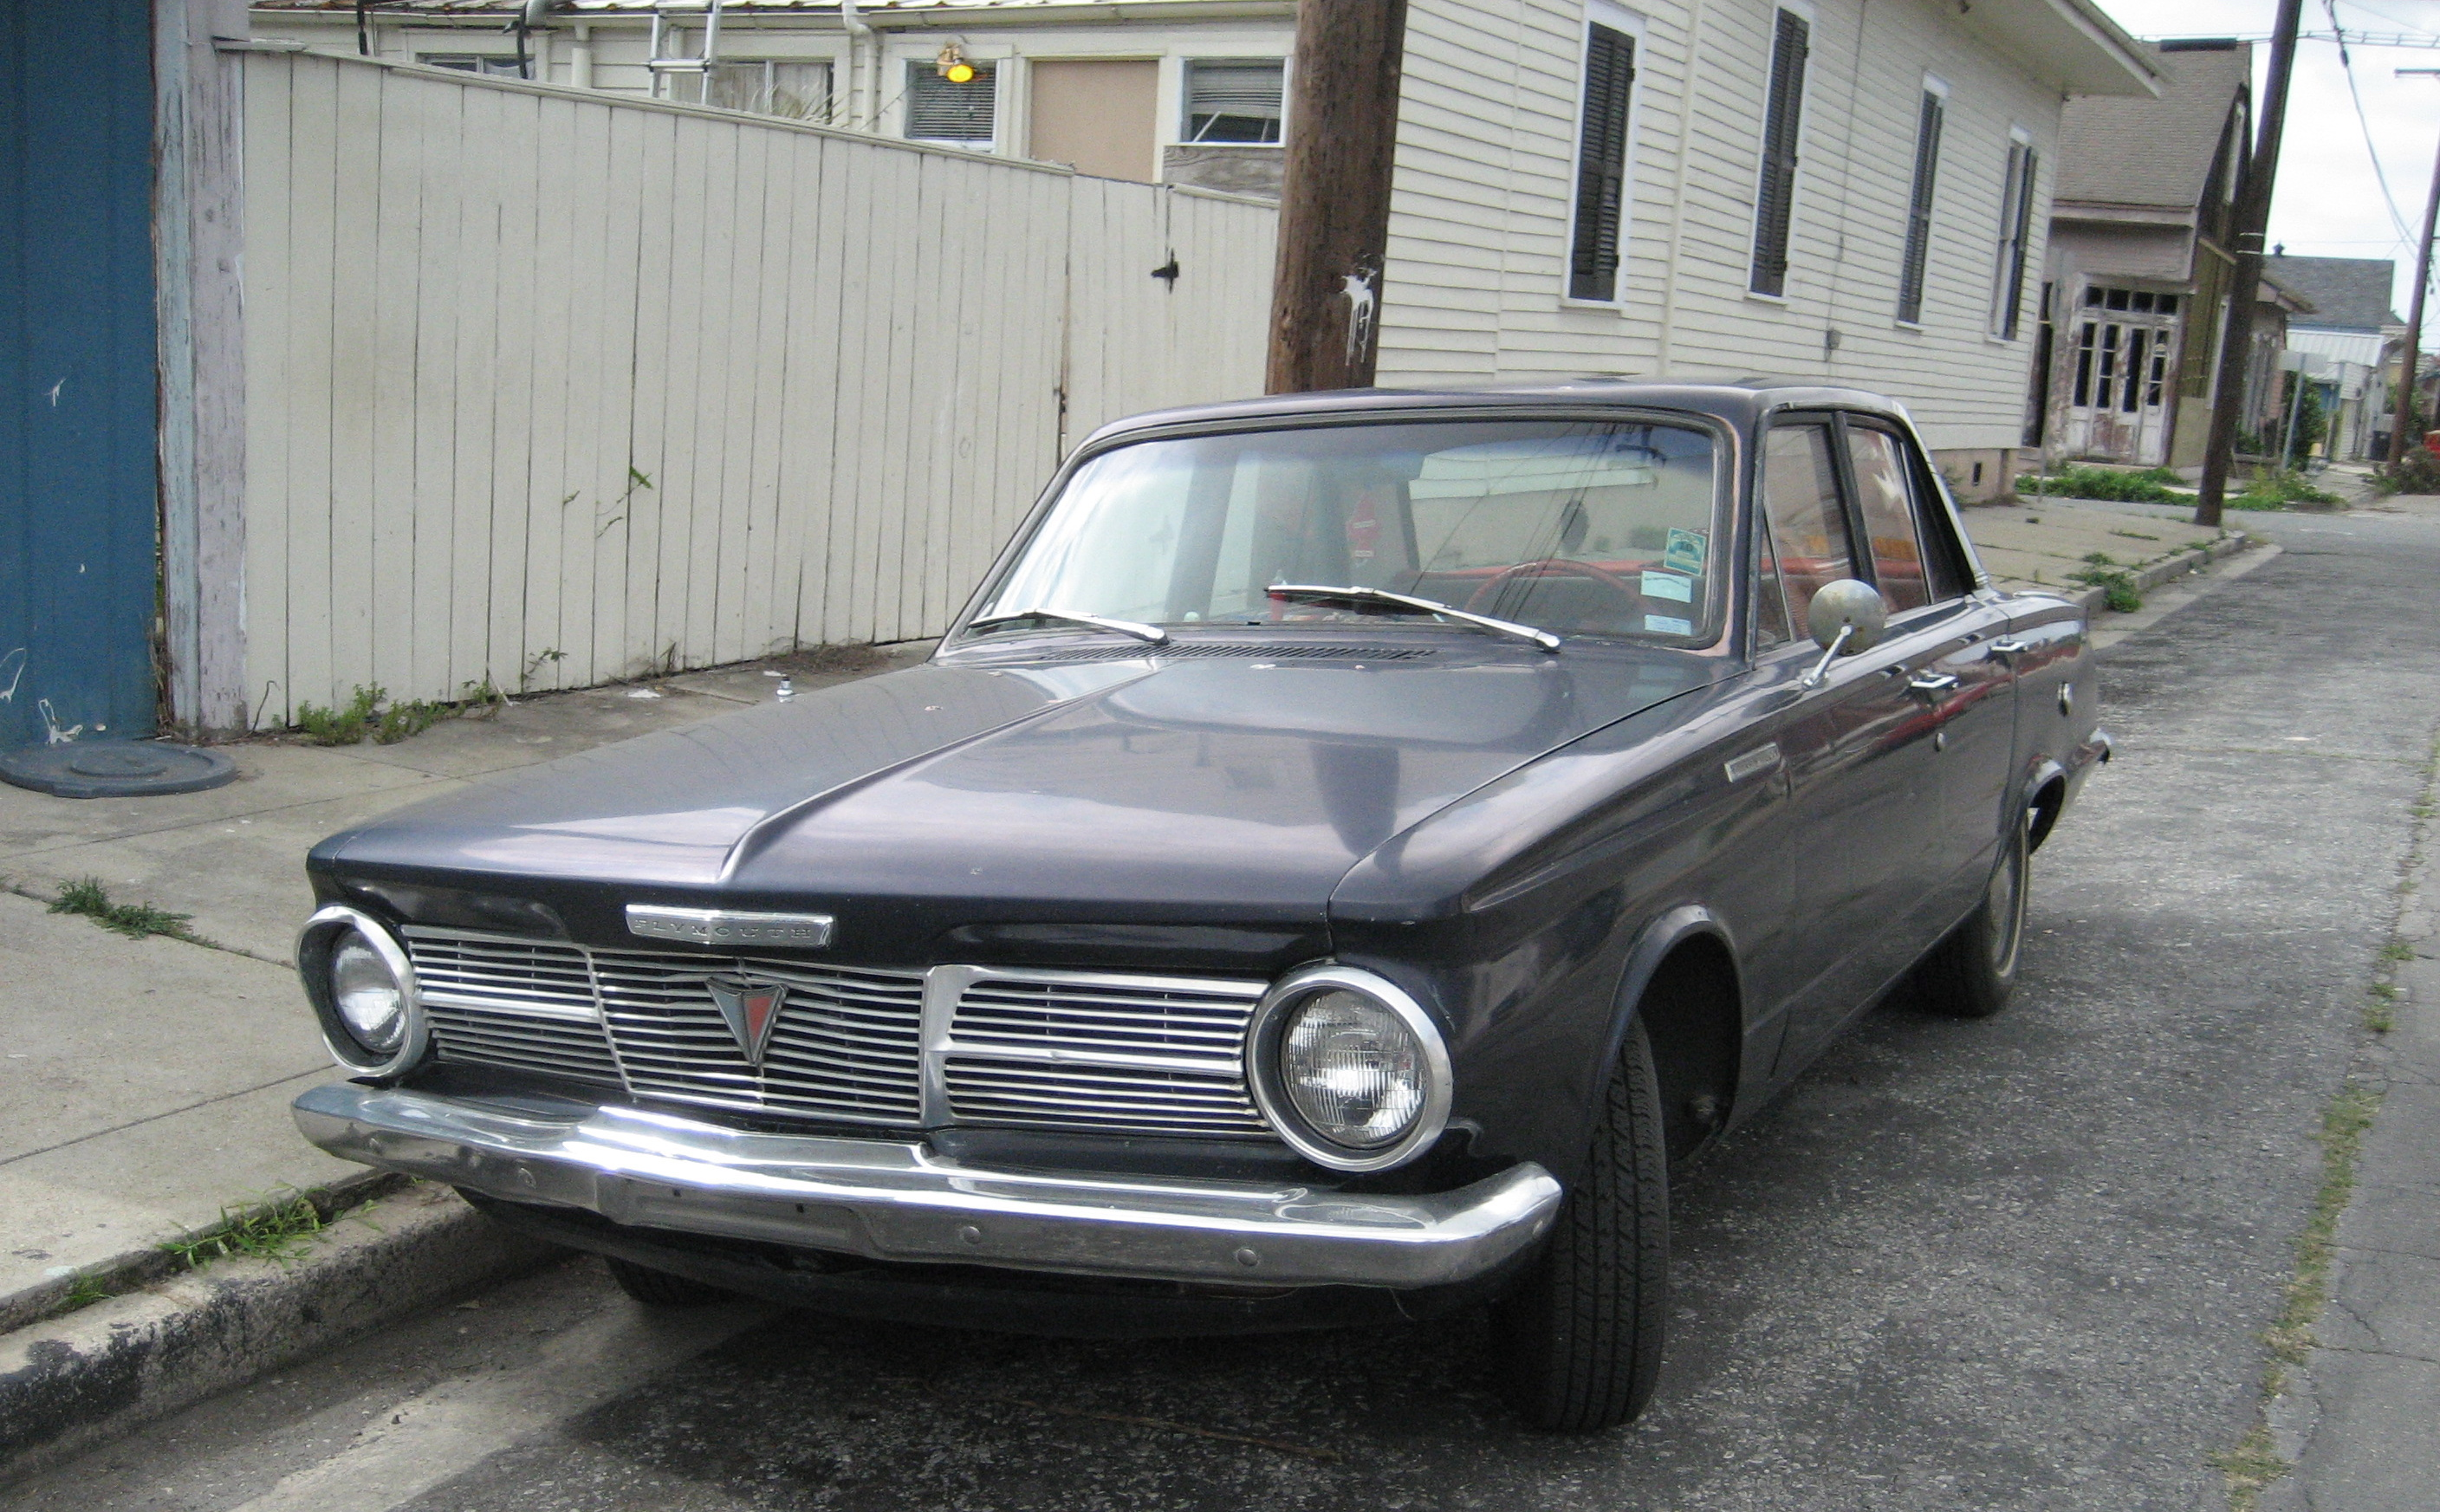 1964 Plymouth Fury Sport Fury 3 likewise 85 2943 in addition 64 Plymouth Sport Fury Projects For Sale together with 64 Plymouth Sport Fury Projects For Sale additionally 1967 Buick Riviera Engines. on 1964 plymouth barracuda black